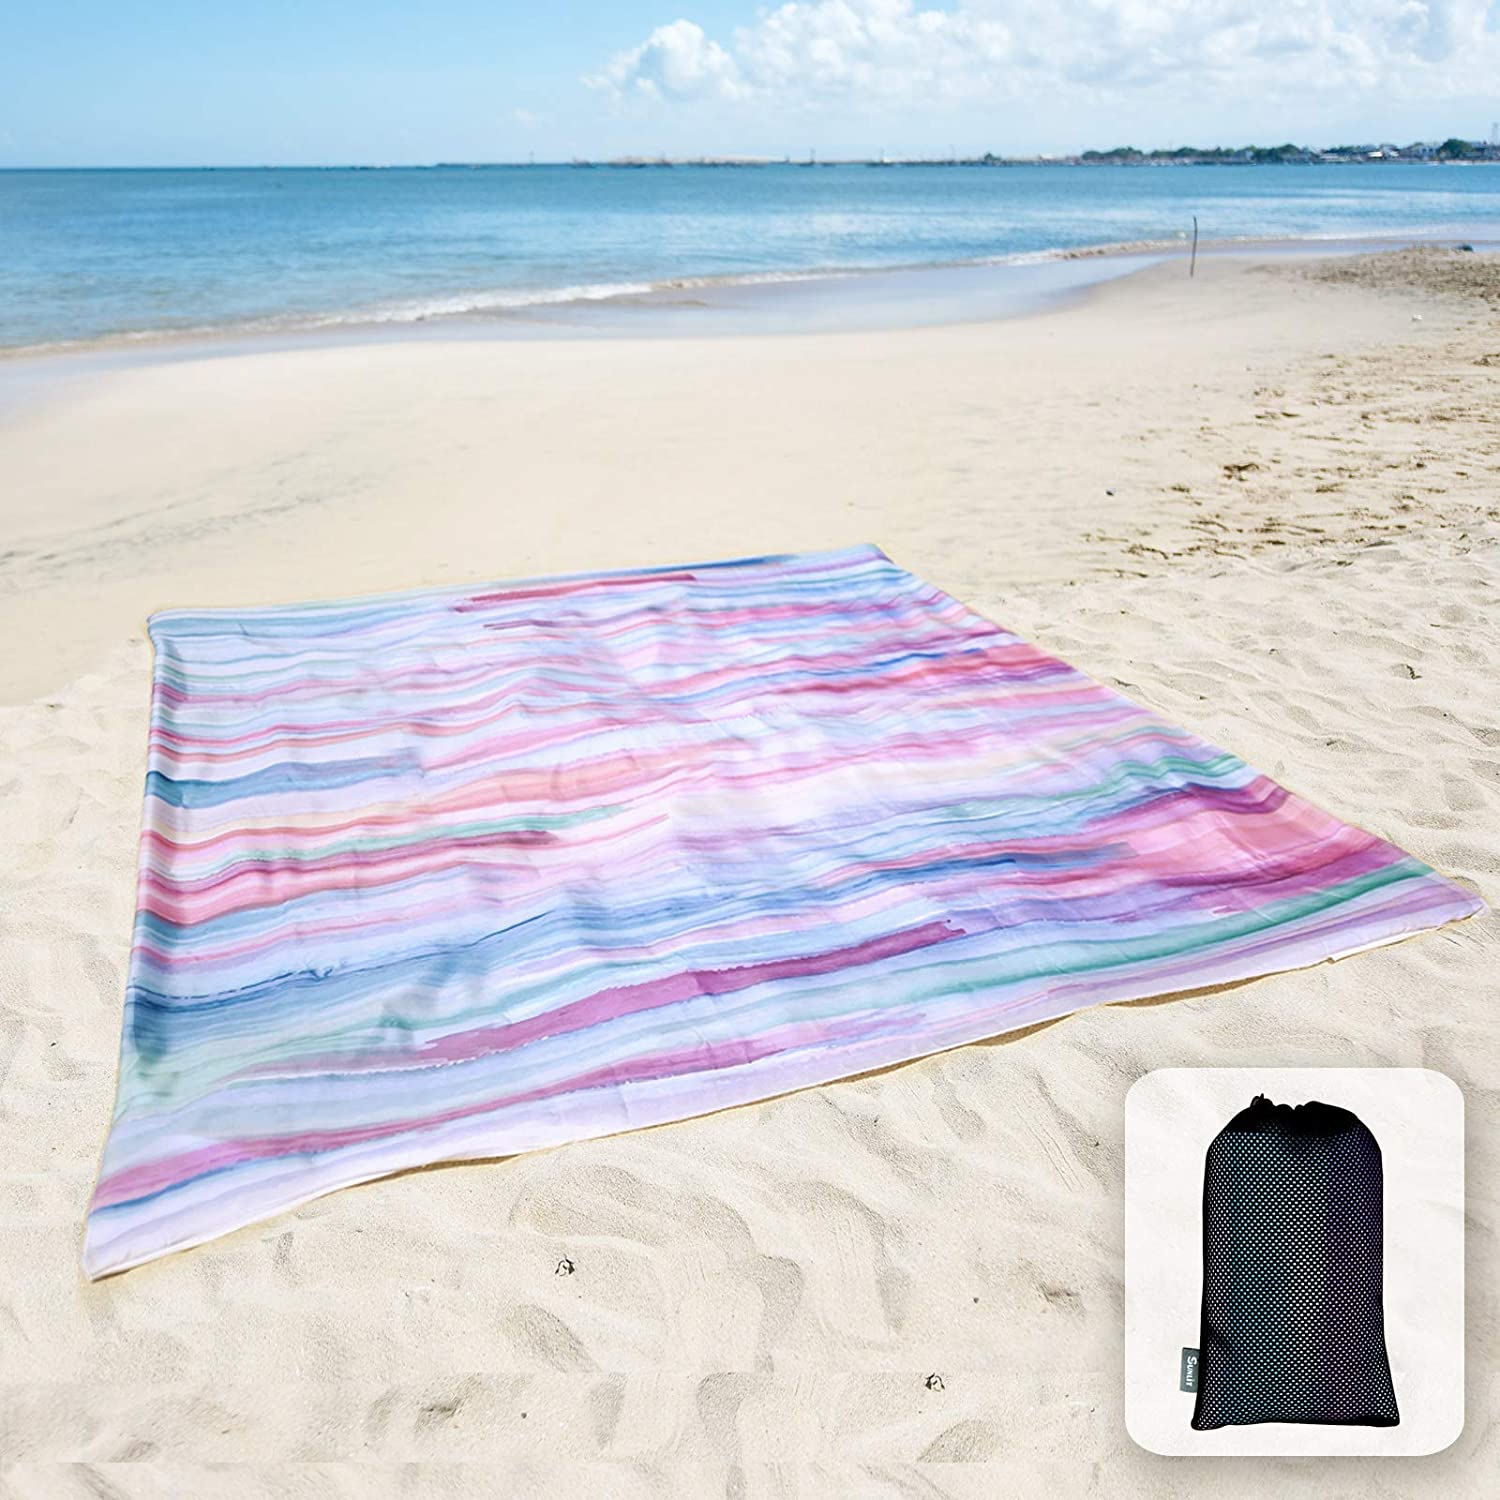 Sunlit Silky Soft Sand Poof Beach Blanket Sand Proof Mat with Corner Pockets and Mesh Bag for Beach Party, Travel, Camping and Outdoor Music Festival, Watercolor Painting, Macaron Blue and Pink